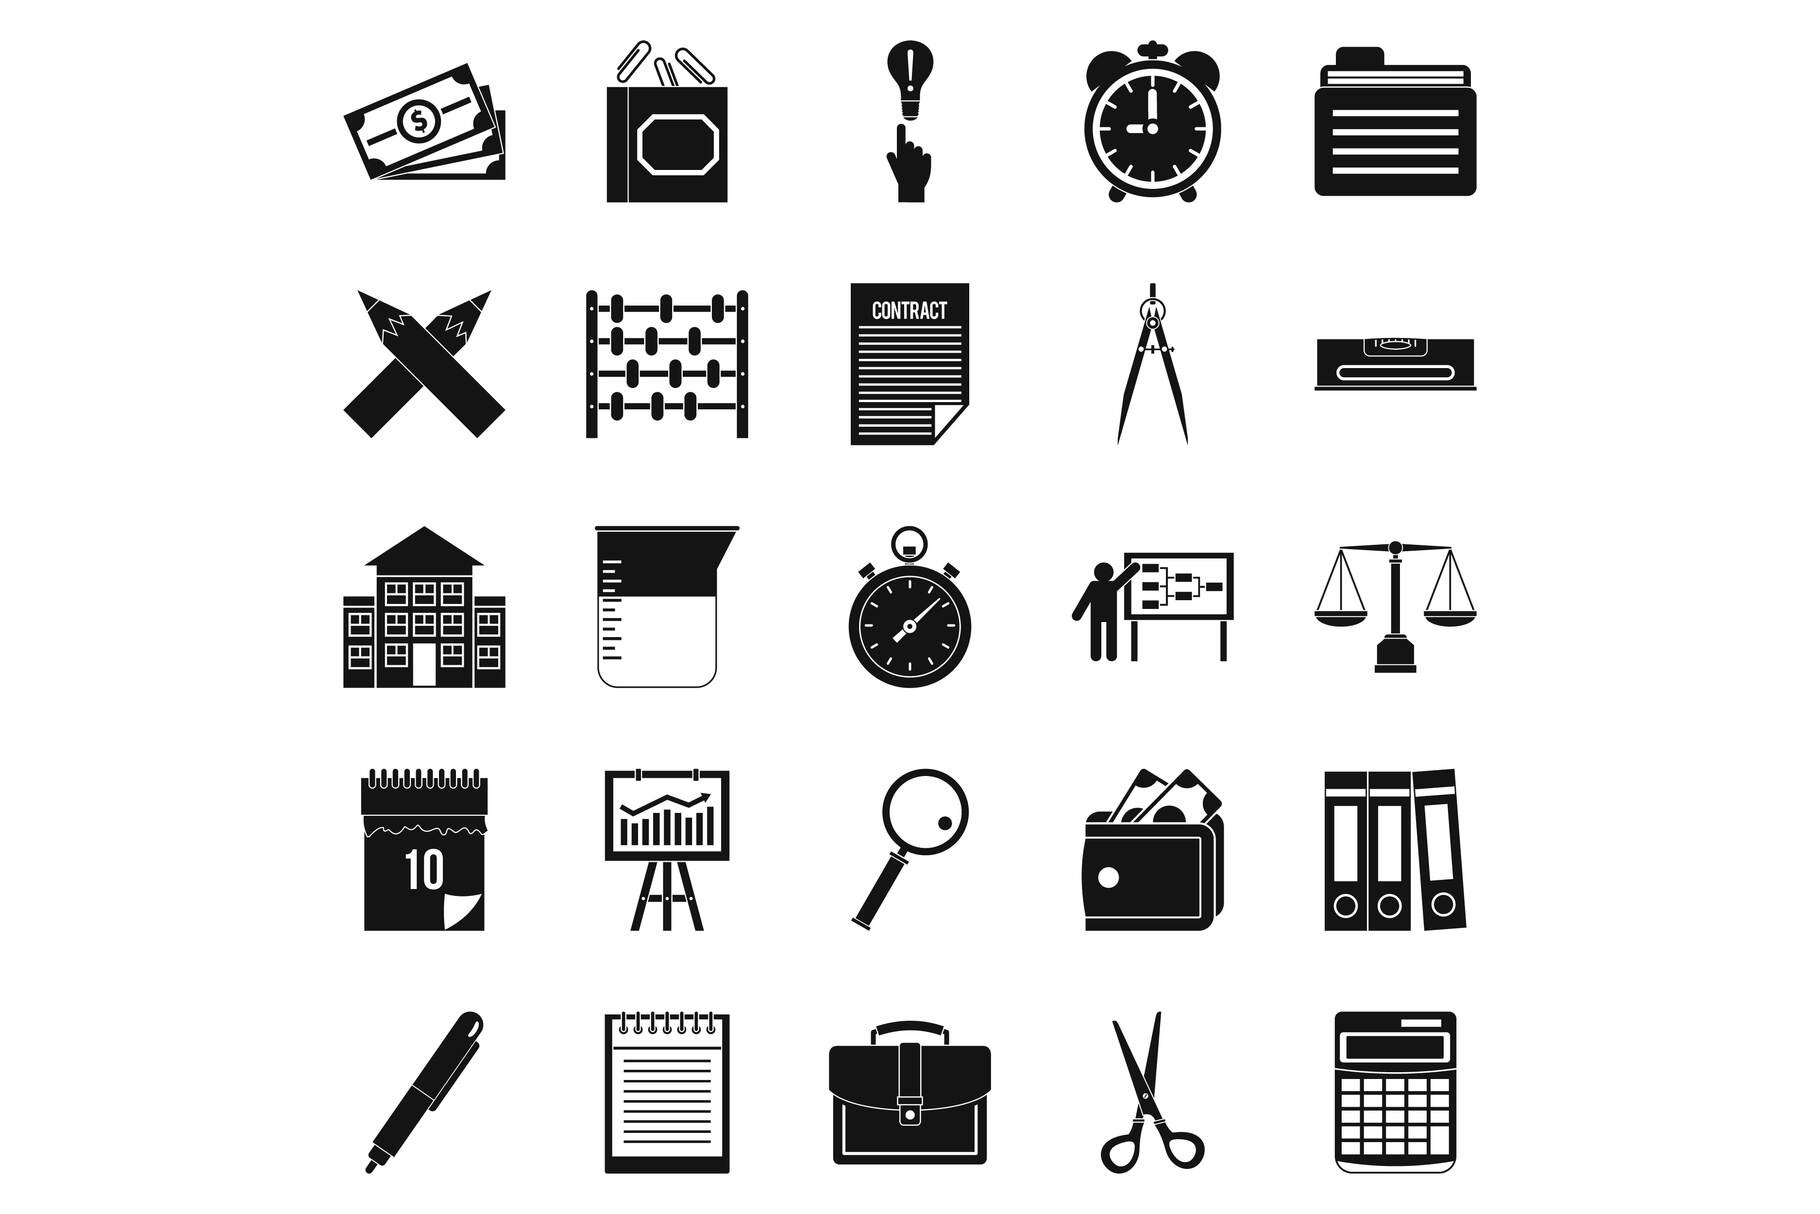 Calculator icons set, simple style example image 1